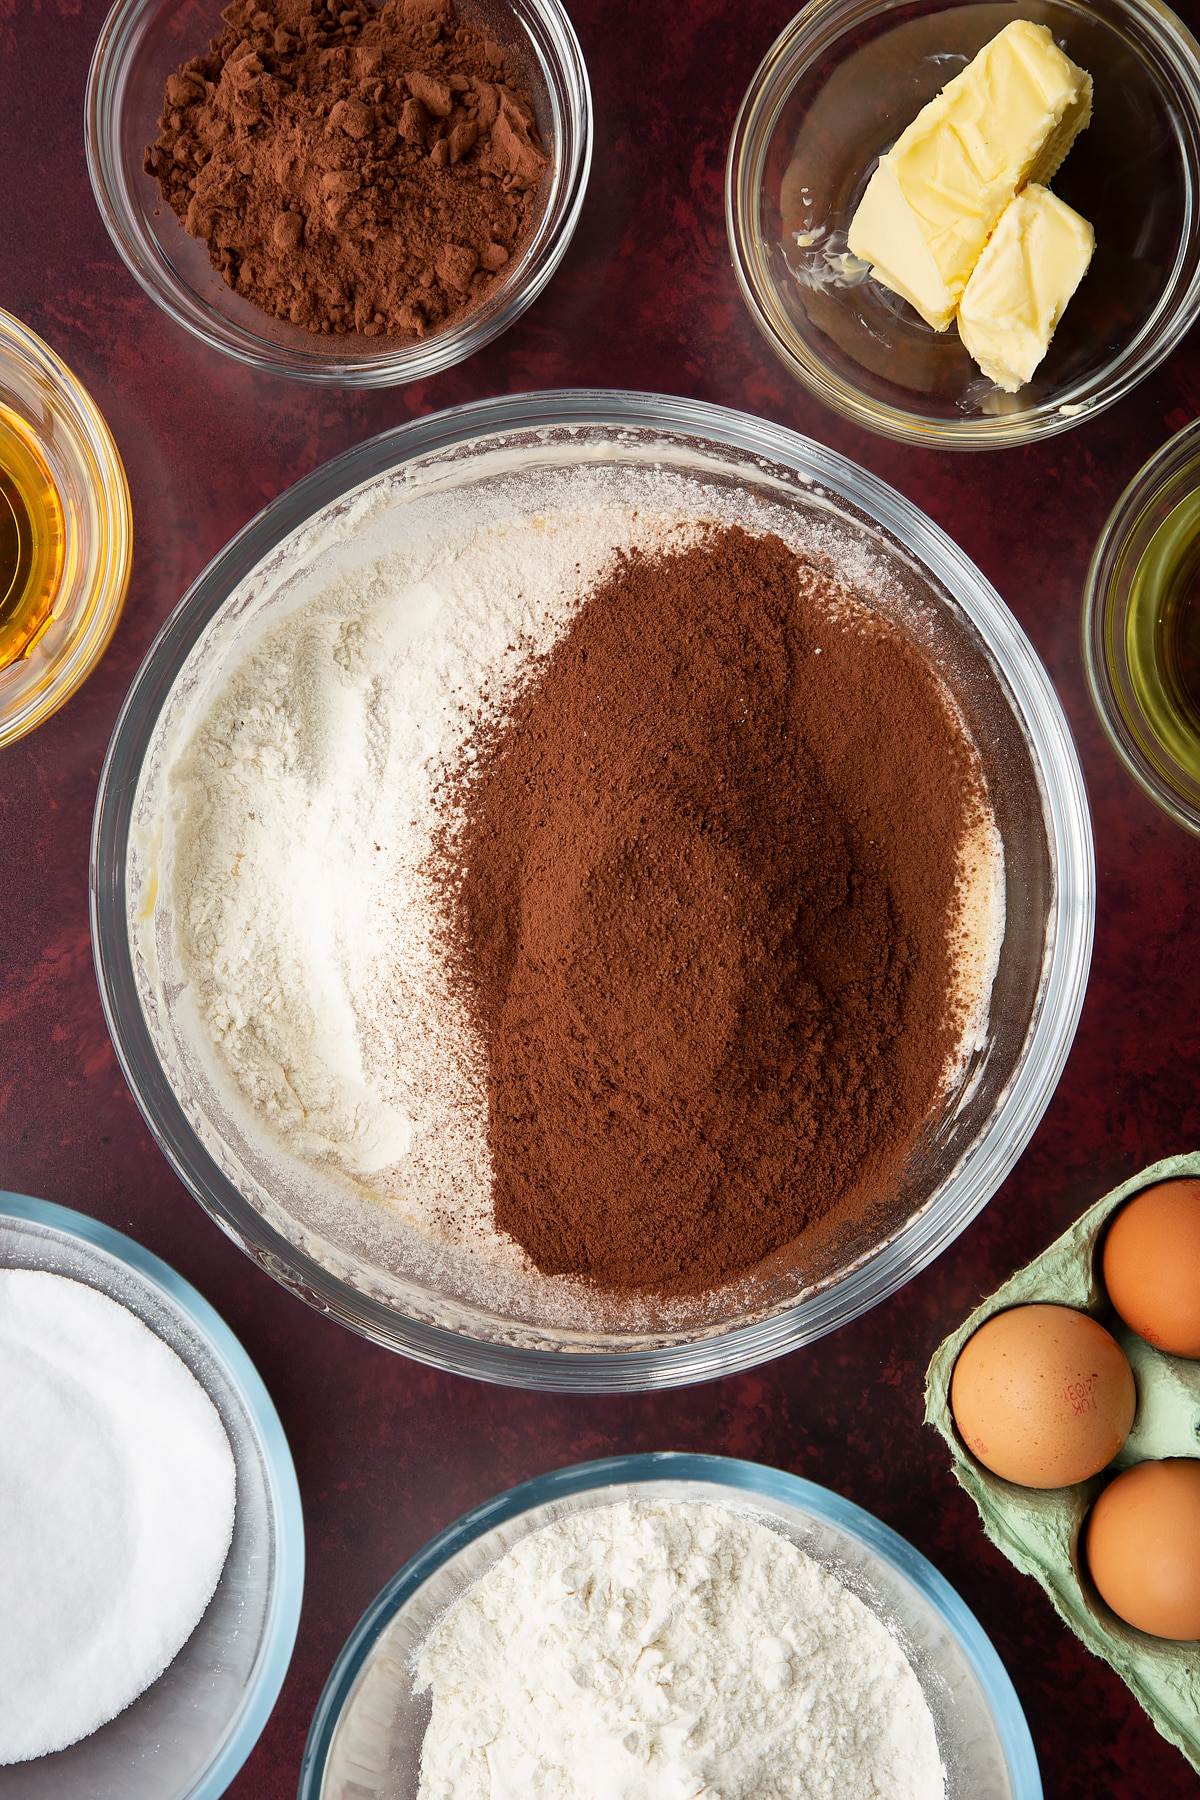 Sugar, golden syrup, oil, milk, eggs and butter, whisked together in a glass mixing bowl with cocoa and flour on top. Ingredients to make chocolate drizzle cake surround the bowl.